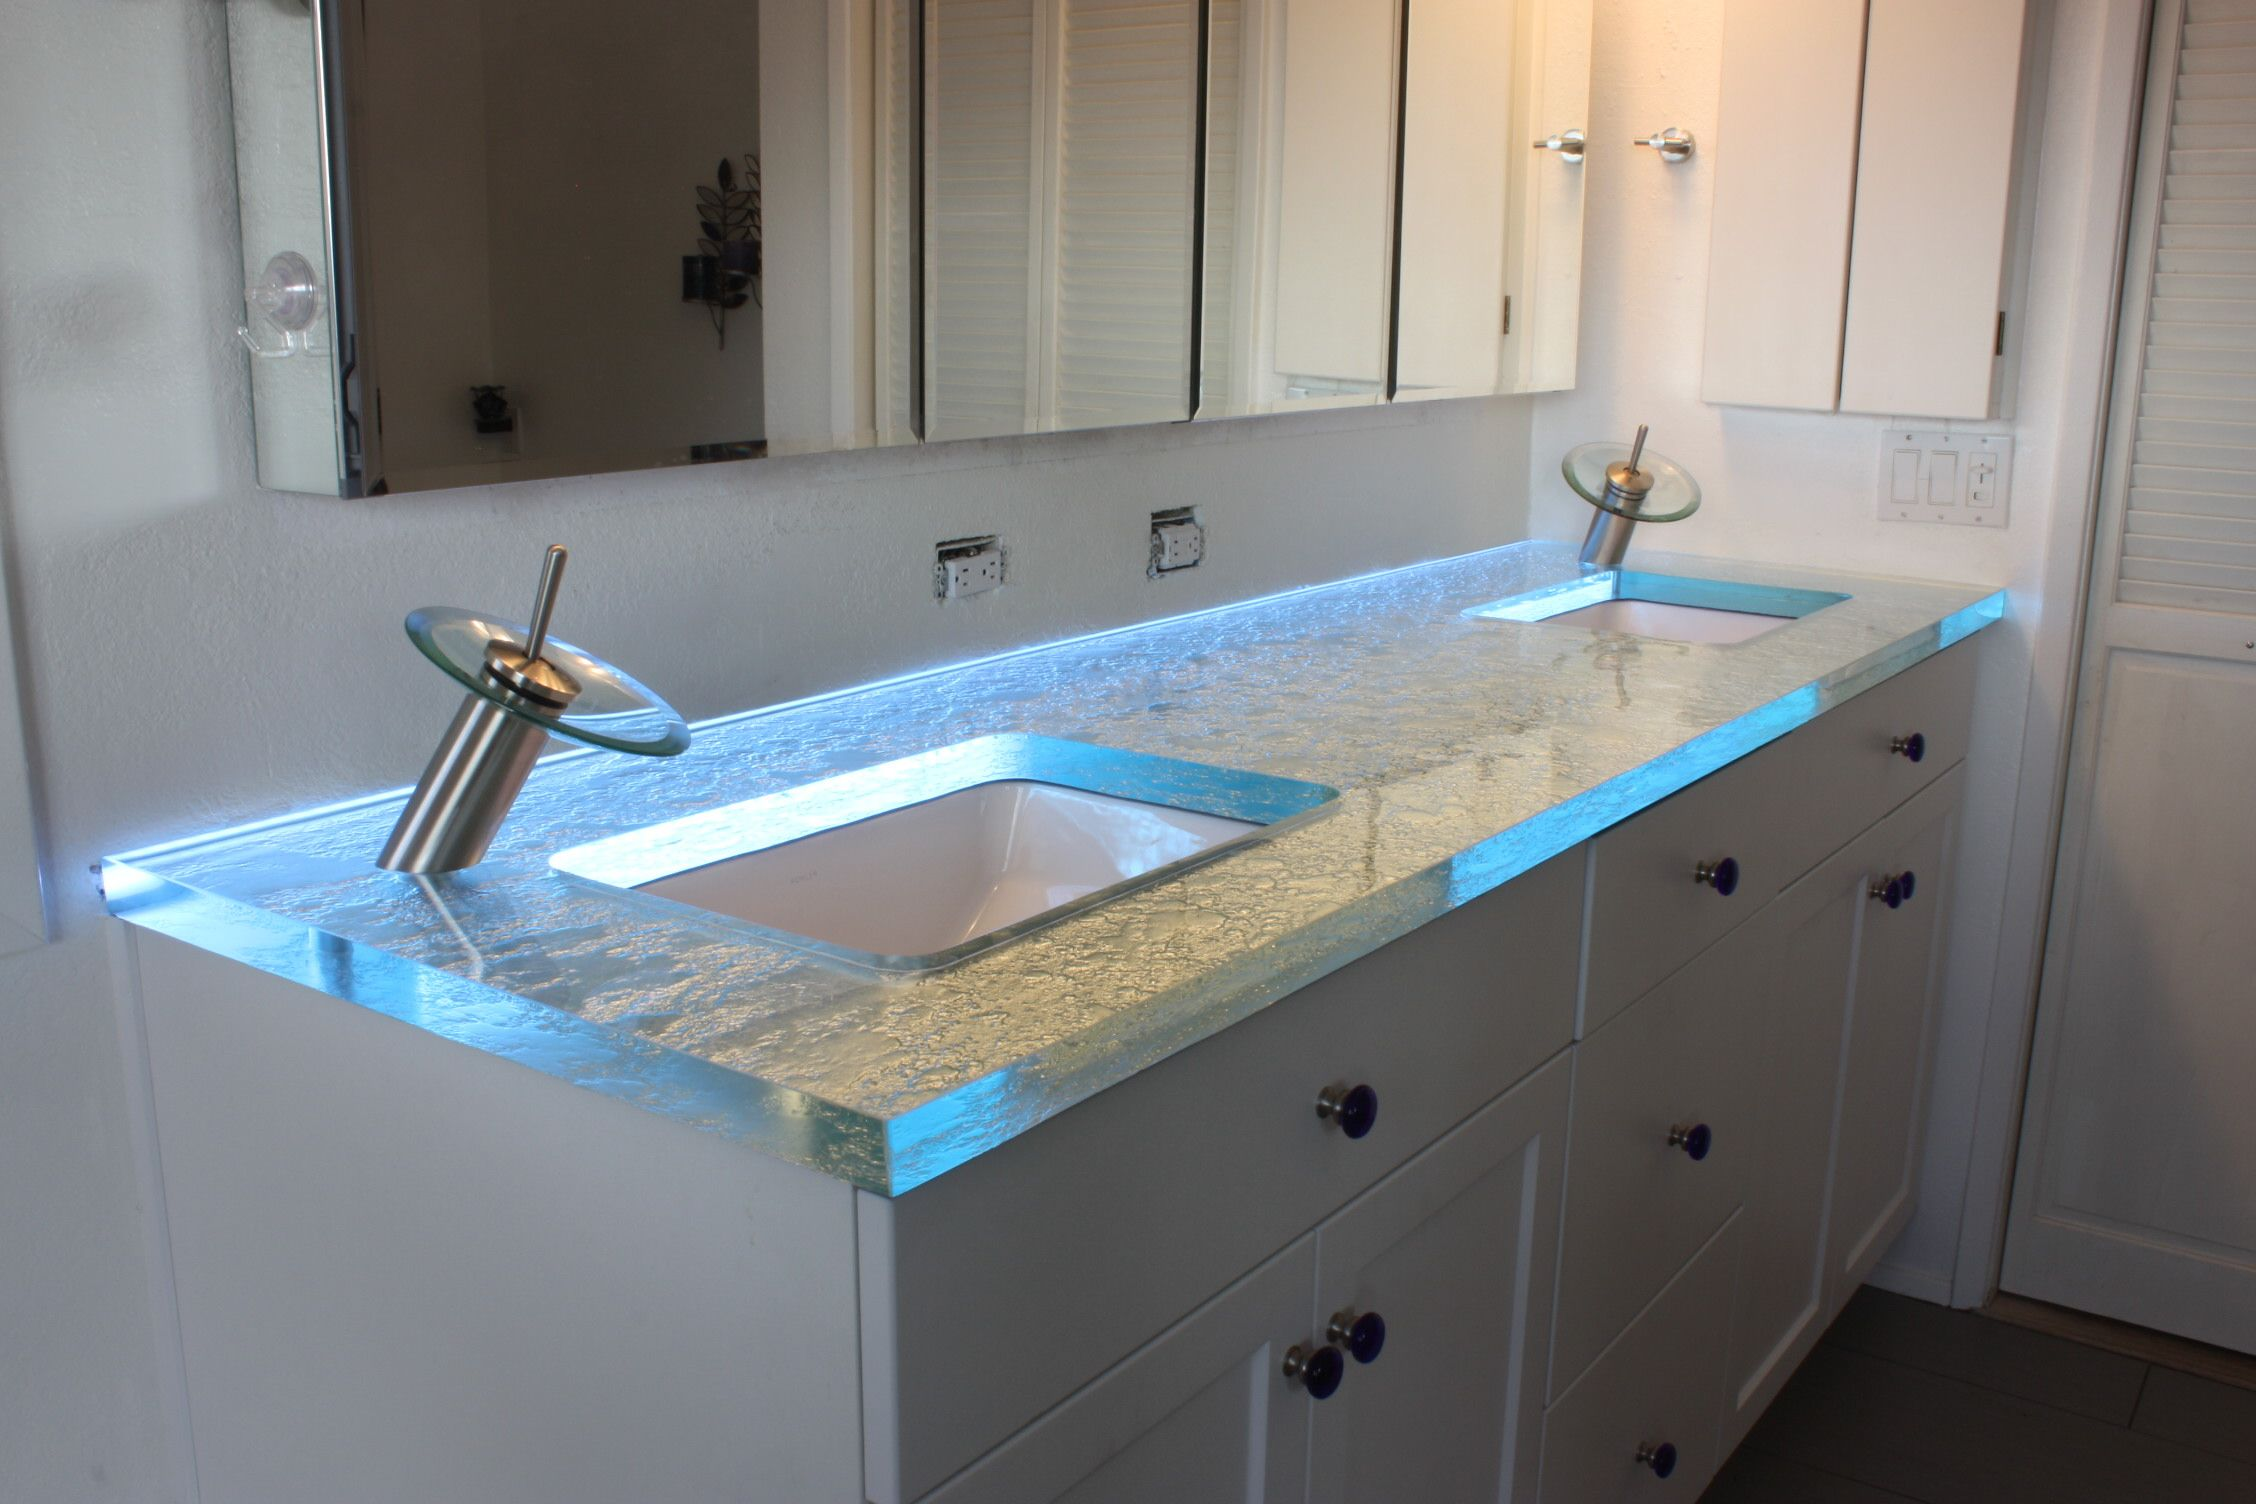 Crystal Led Mirror Light Bathroom Toilet Waterproof Home: Amazing Glass Bathroom Counter Top From Gravity Glas. LED